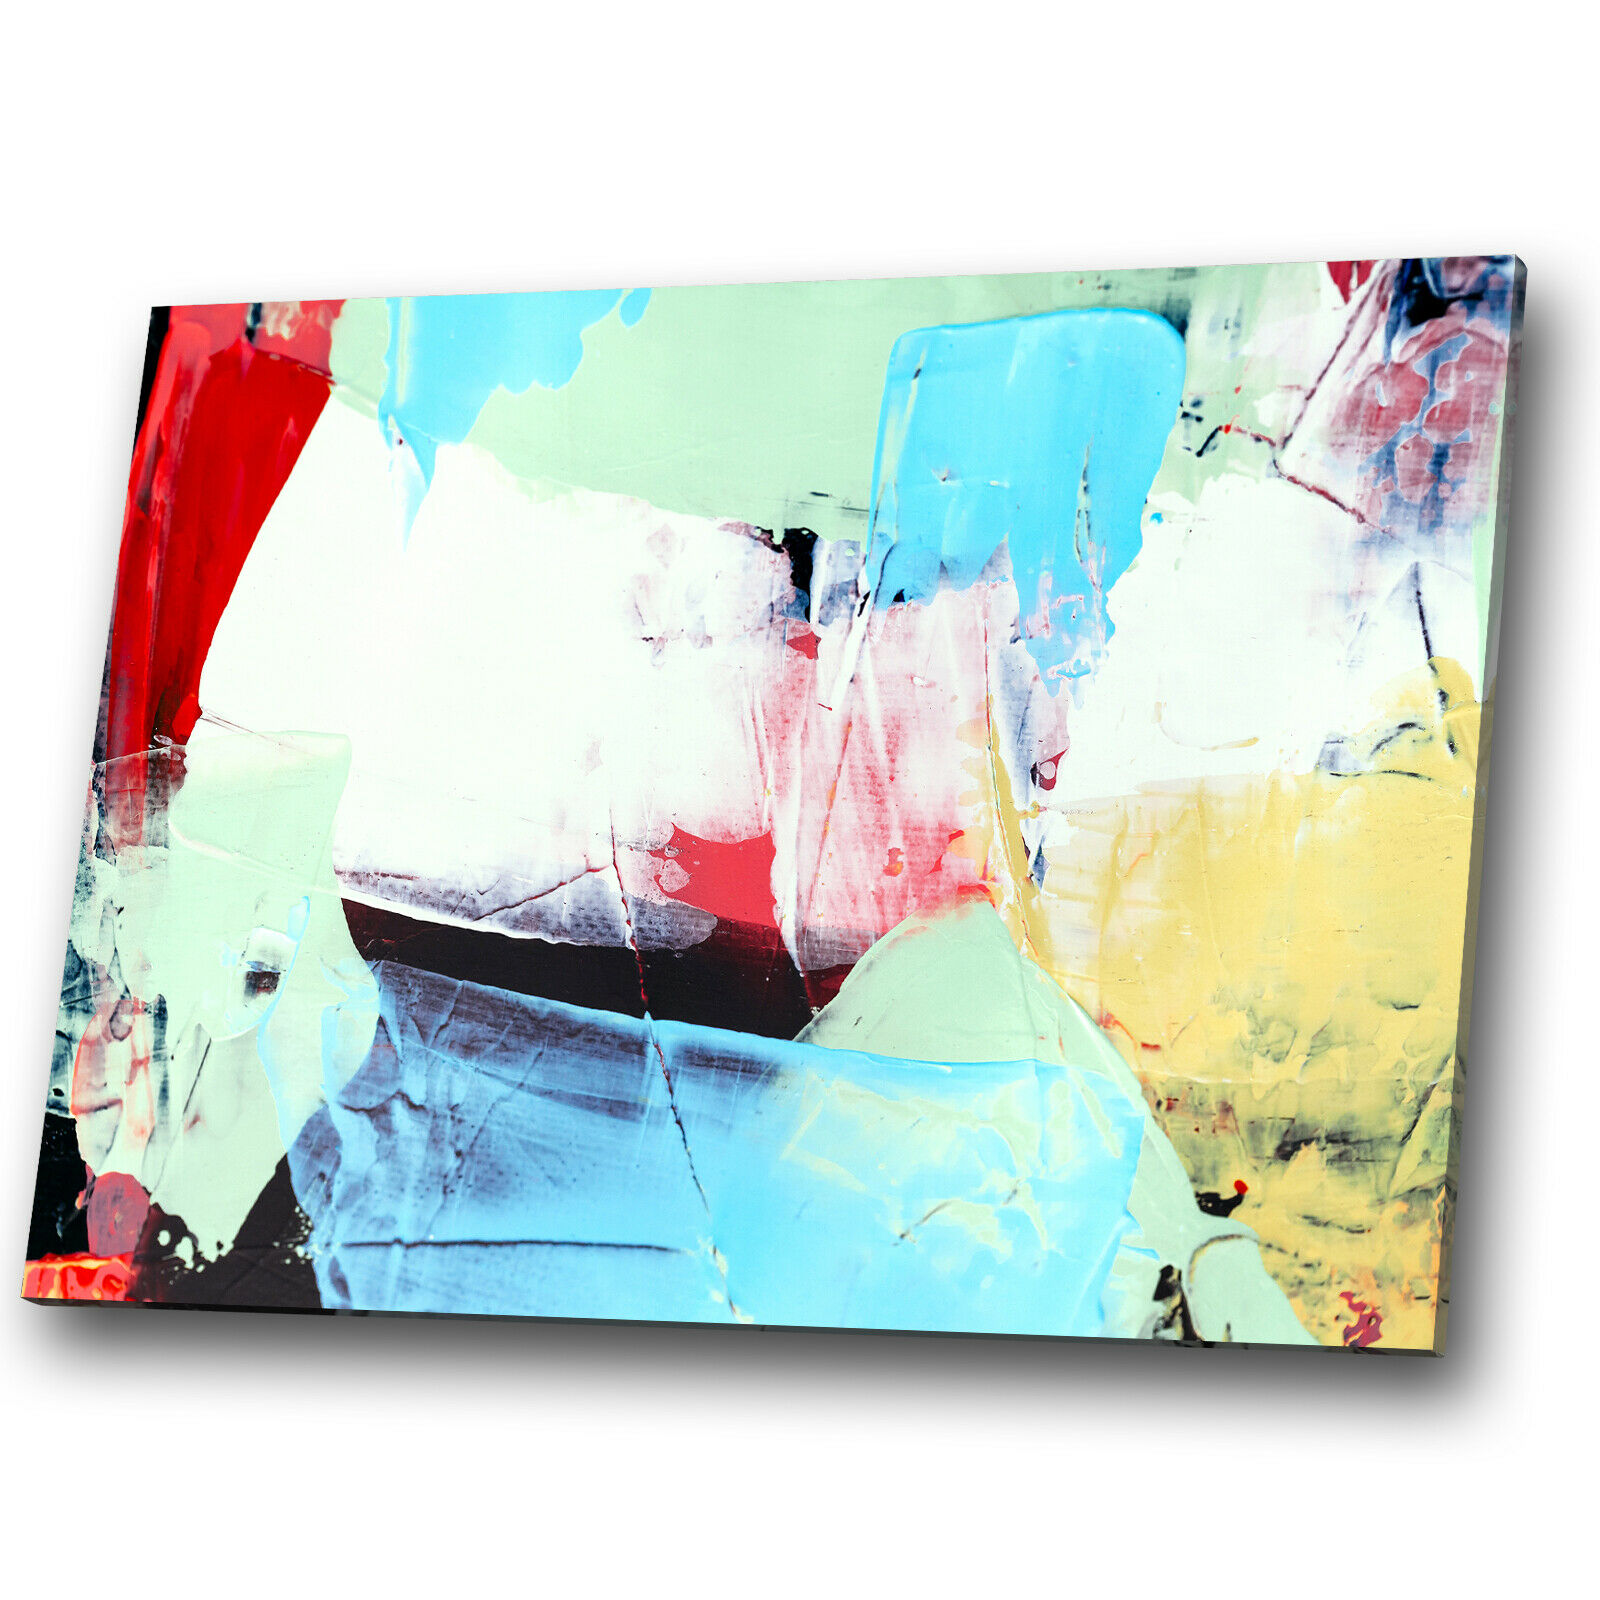 Blau Gelb rot Grün Weiß Abstract Canvas Wall Art Large Picture Prints